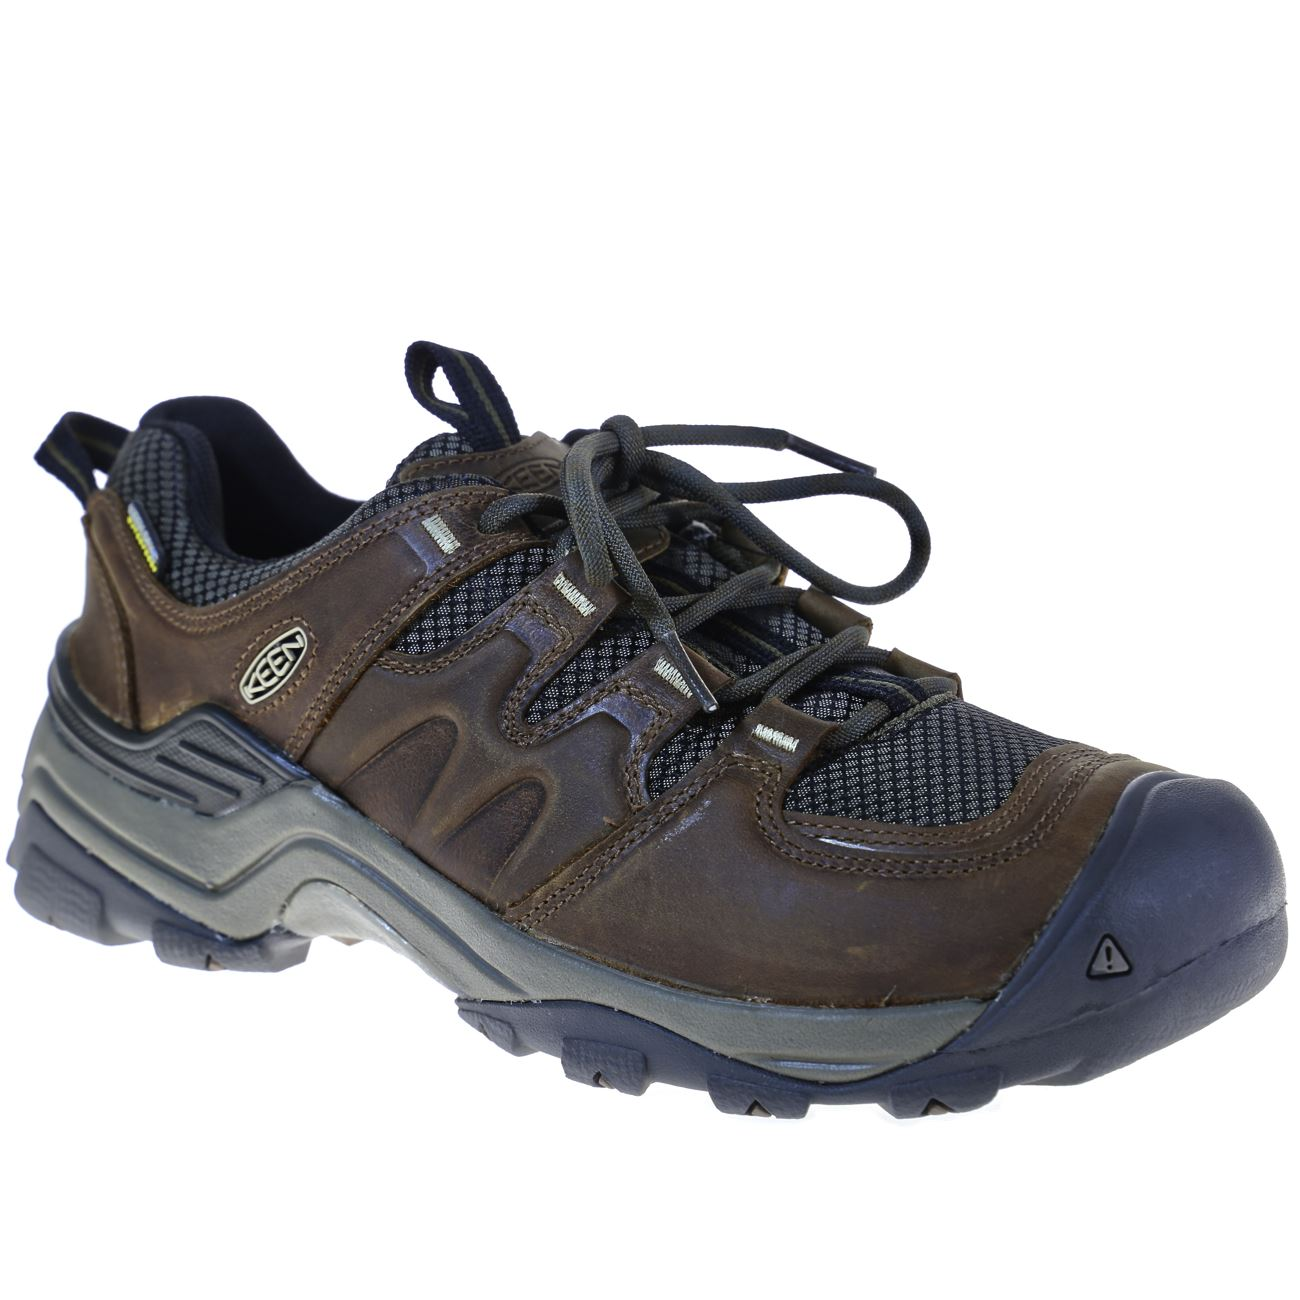 KEEN, Gypsum II WP Mens, Grand Canyon Dark Earth Hiking Shoes Keen